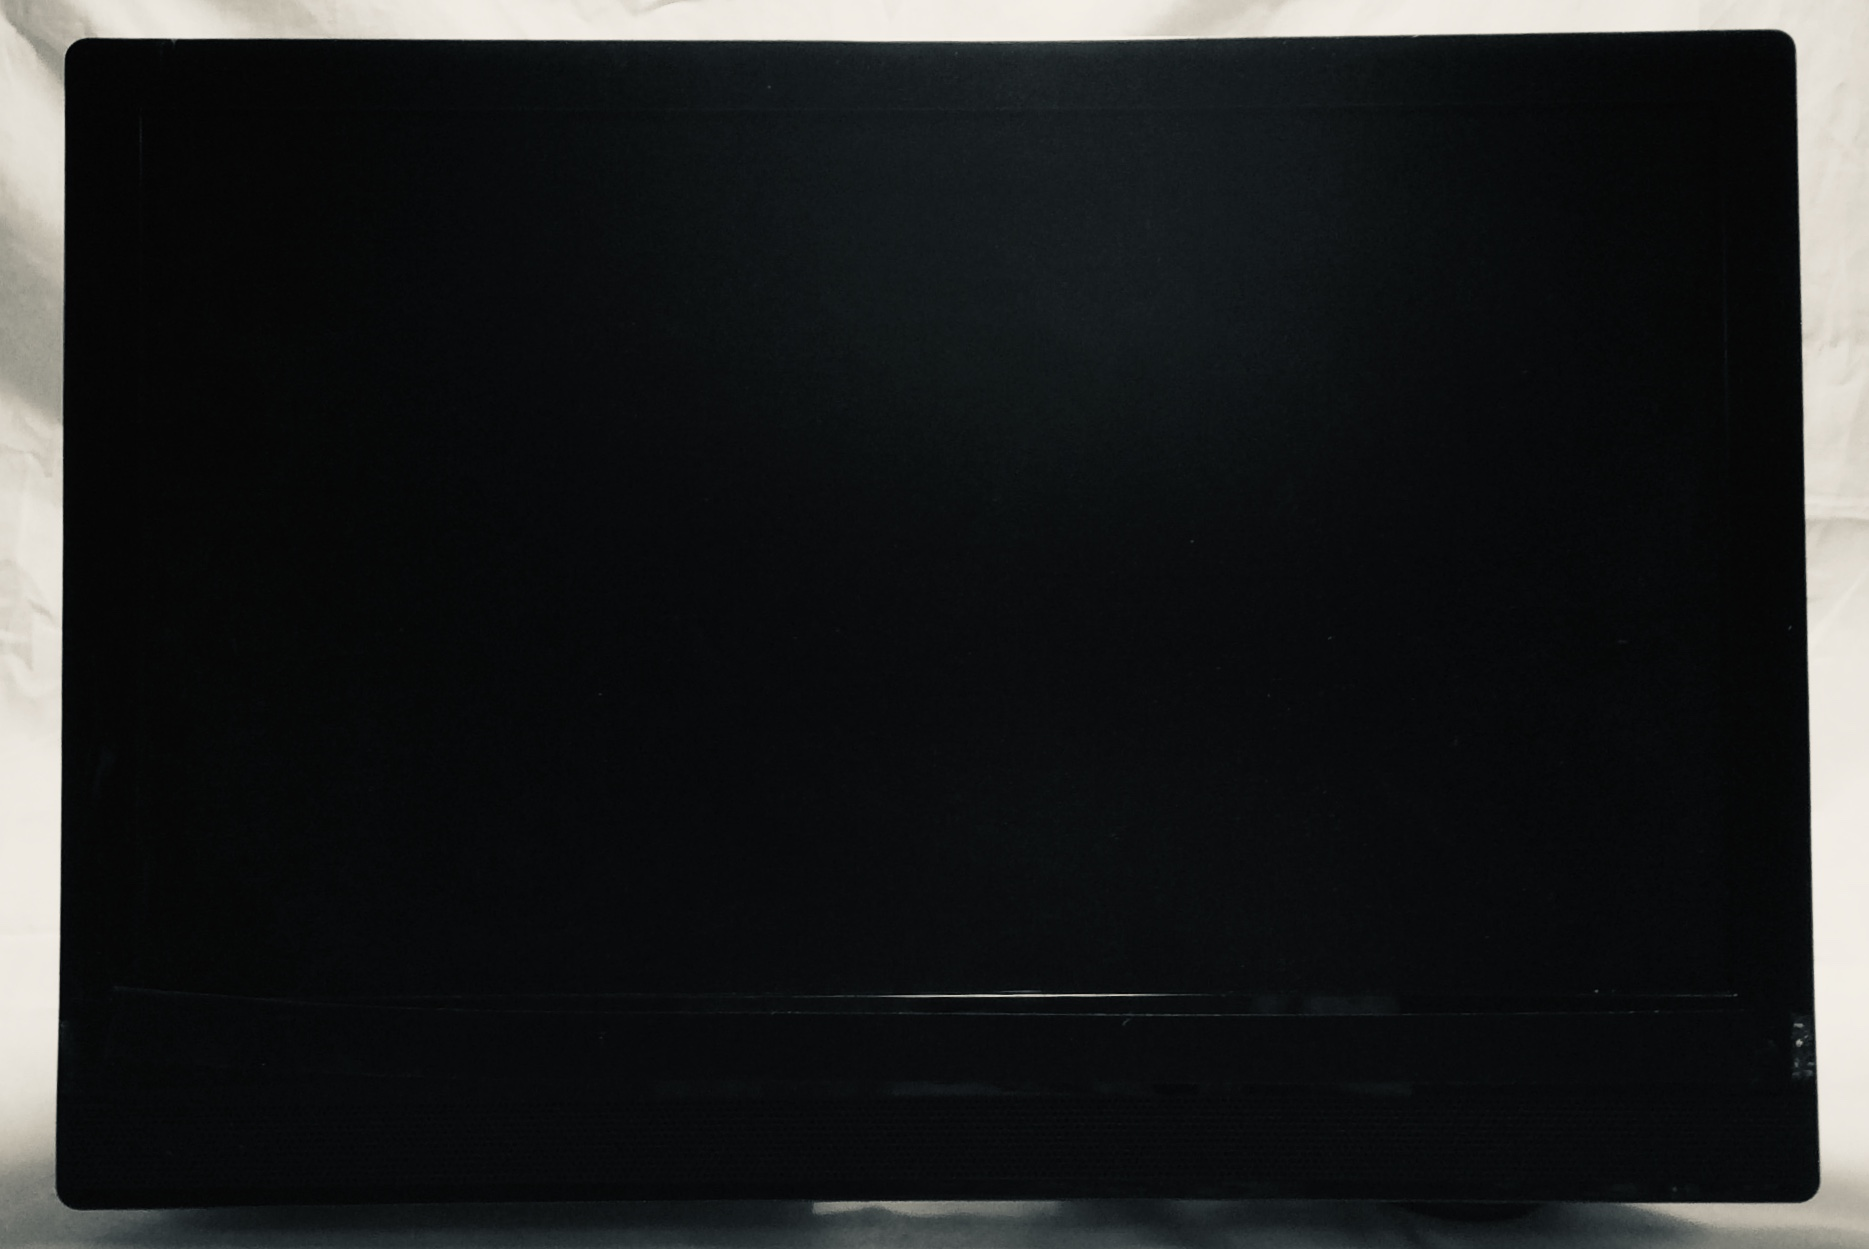 Insignia Products Large black screen